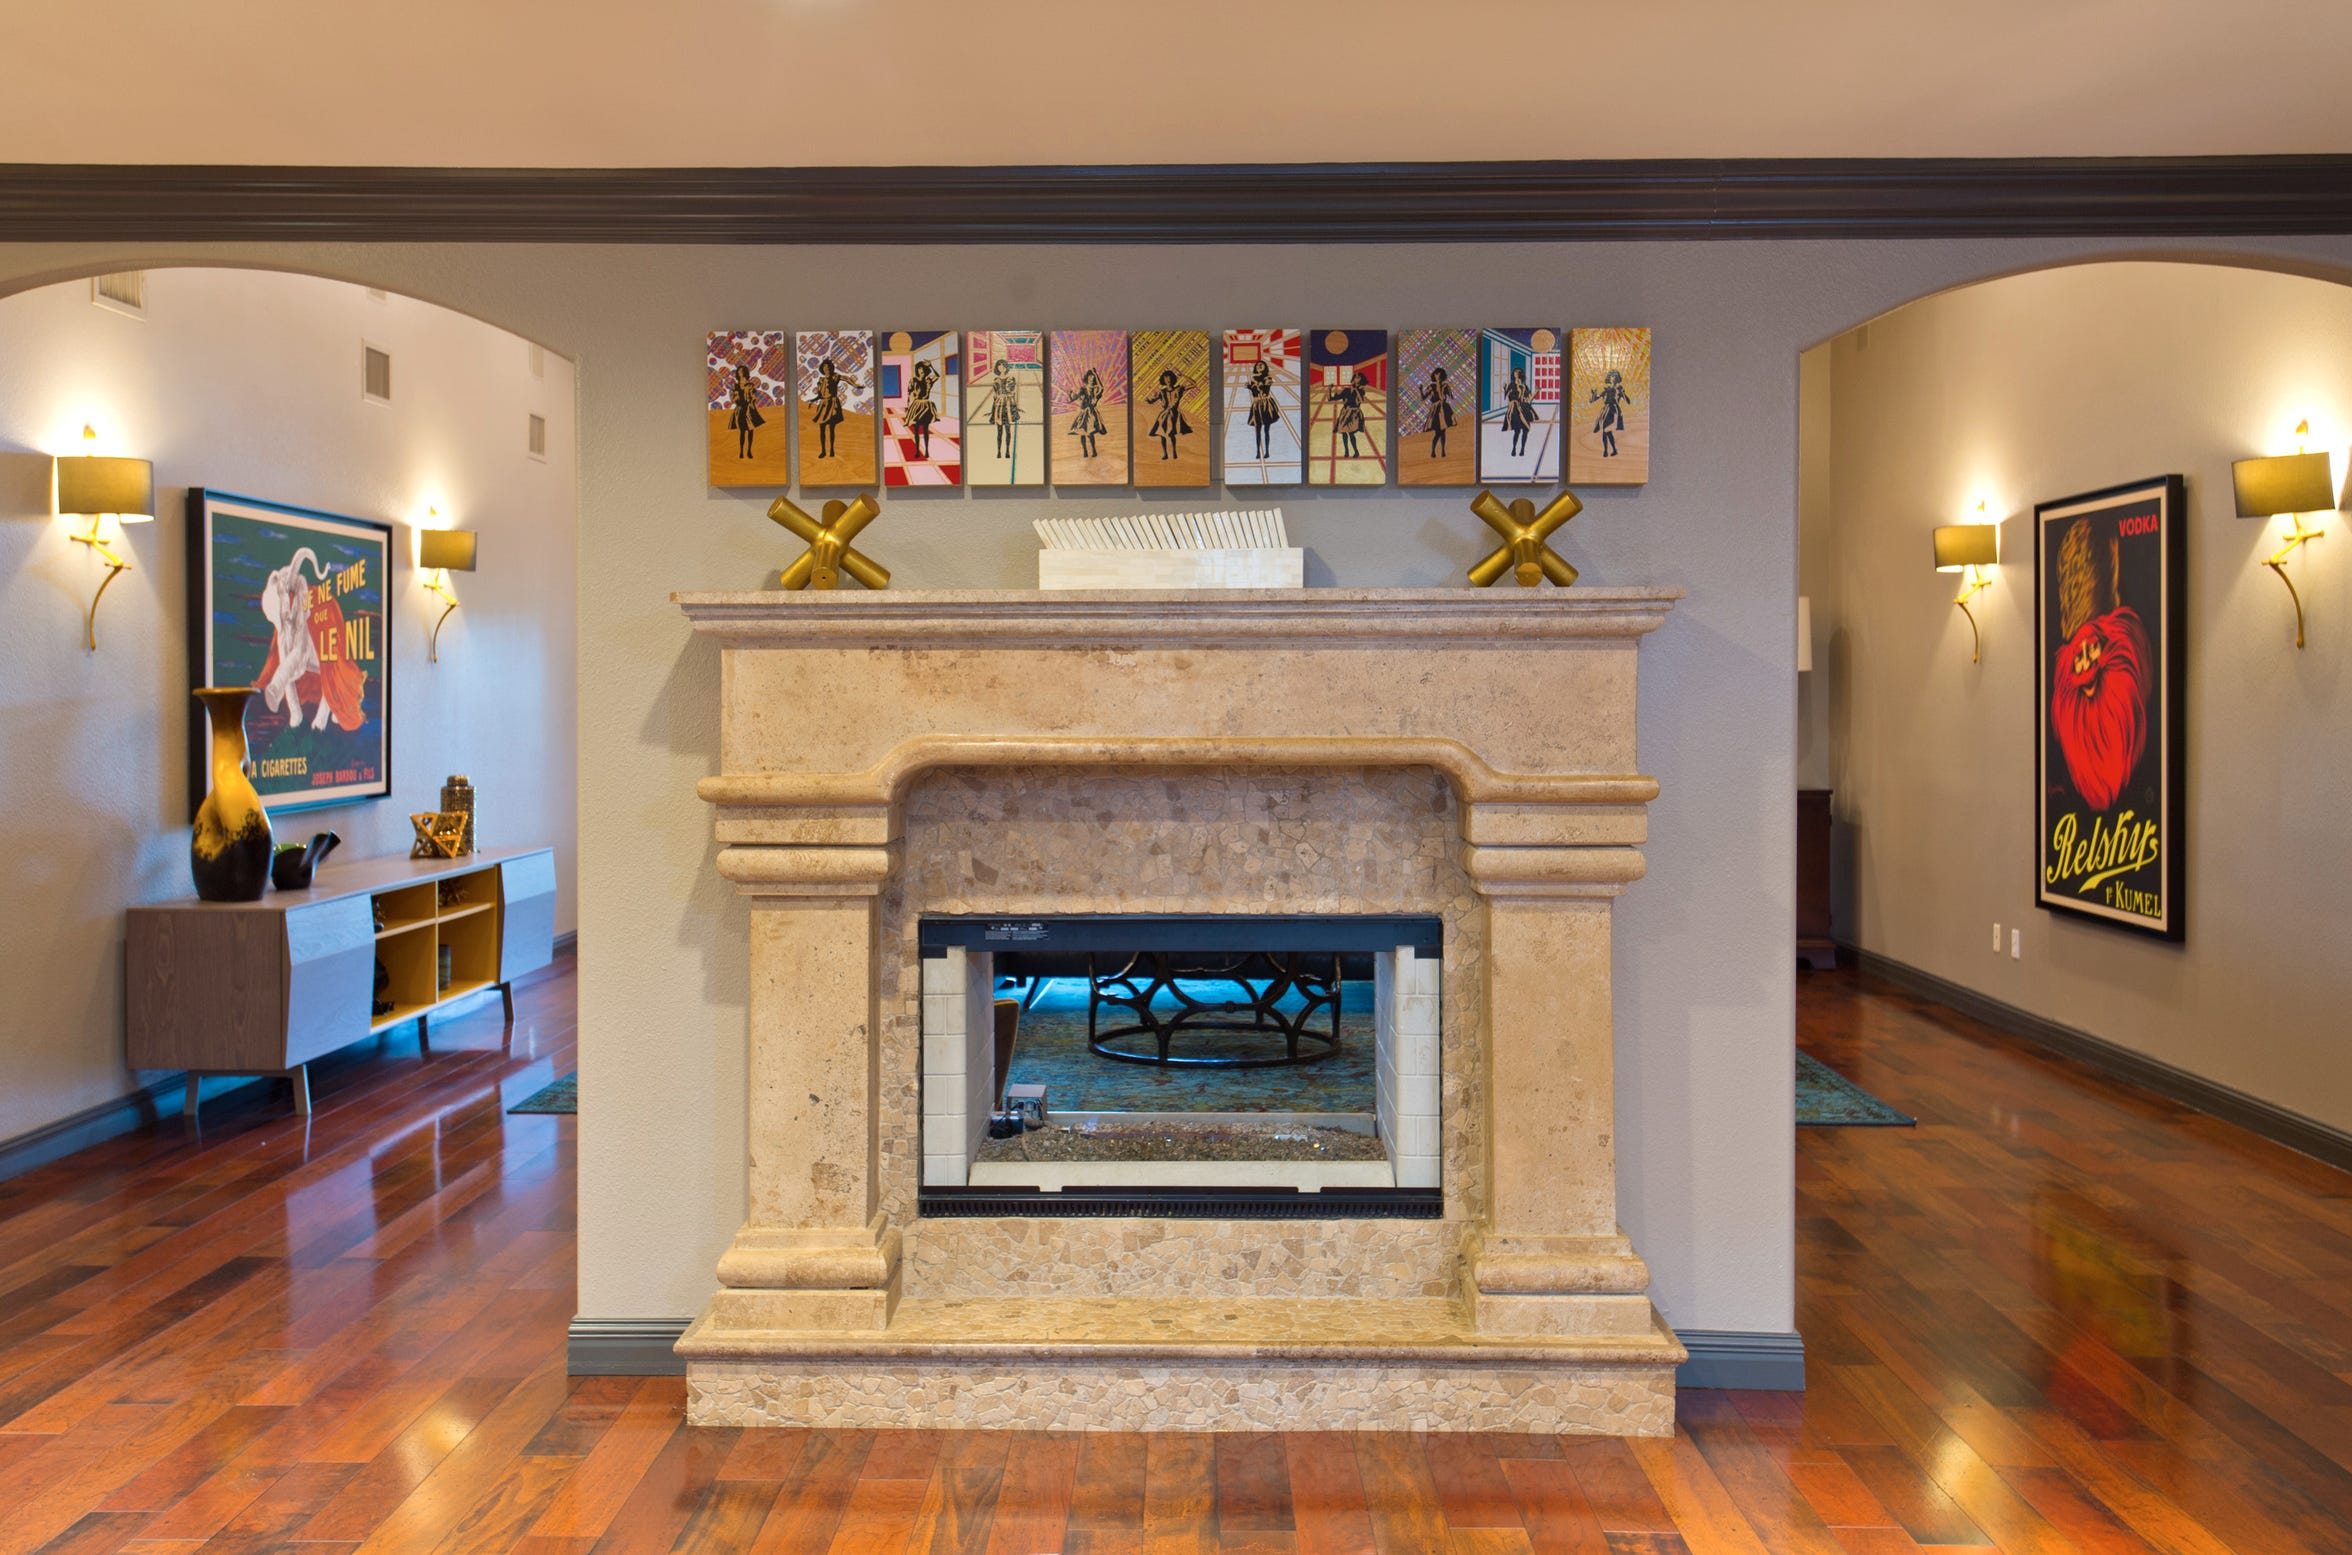 An extraordinary two way fireplace connects the kitchen, living room and bar.